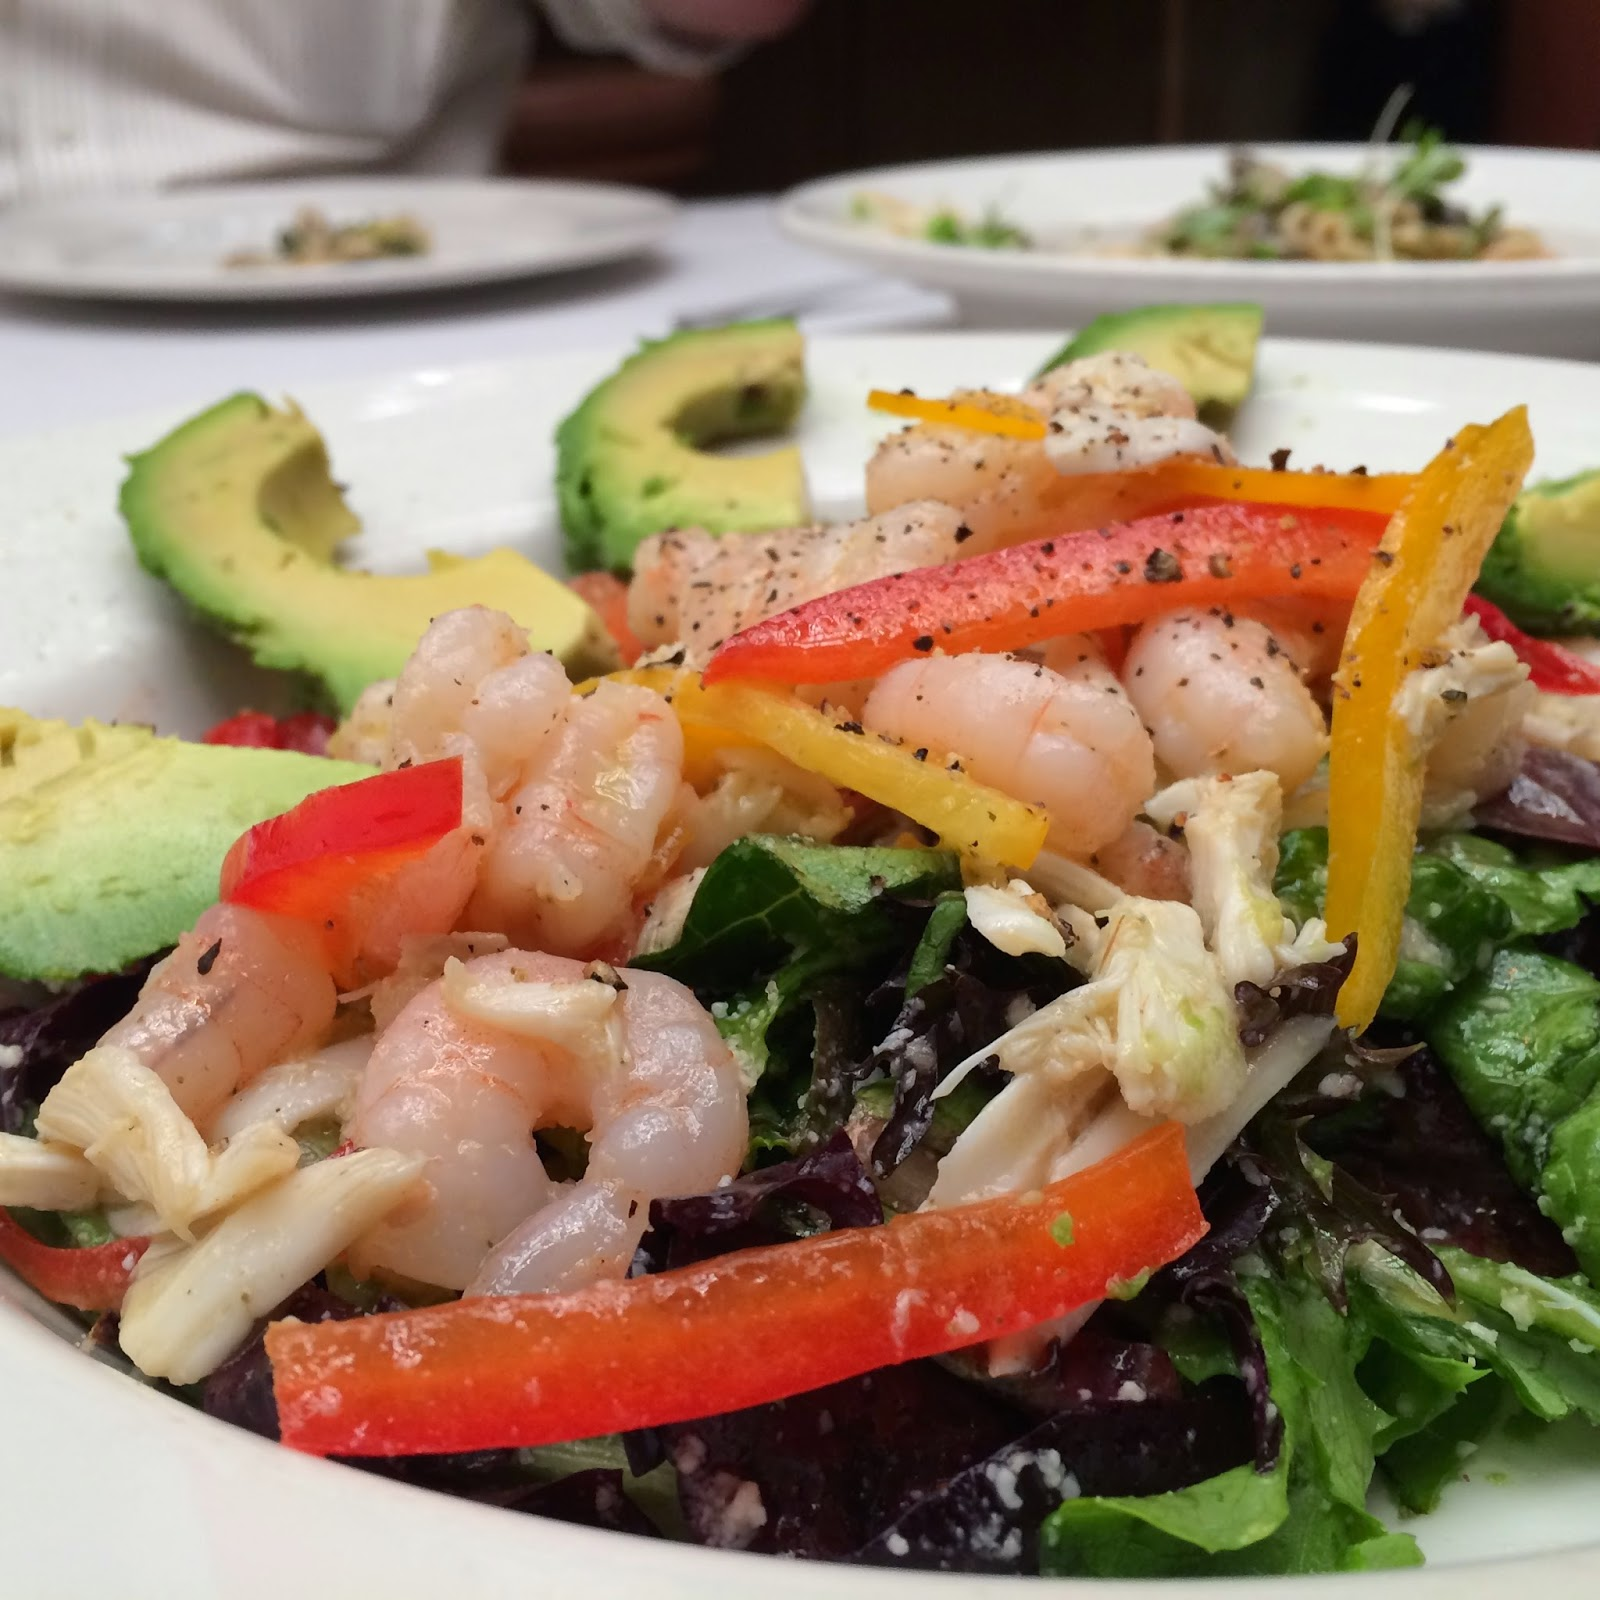 Juban's Marinated Seafood & Avocado Salad